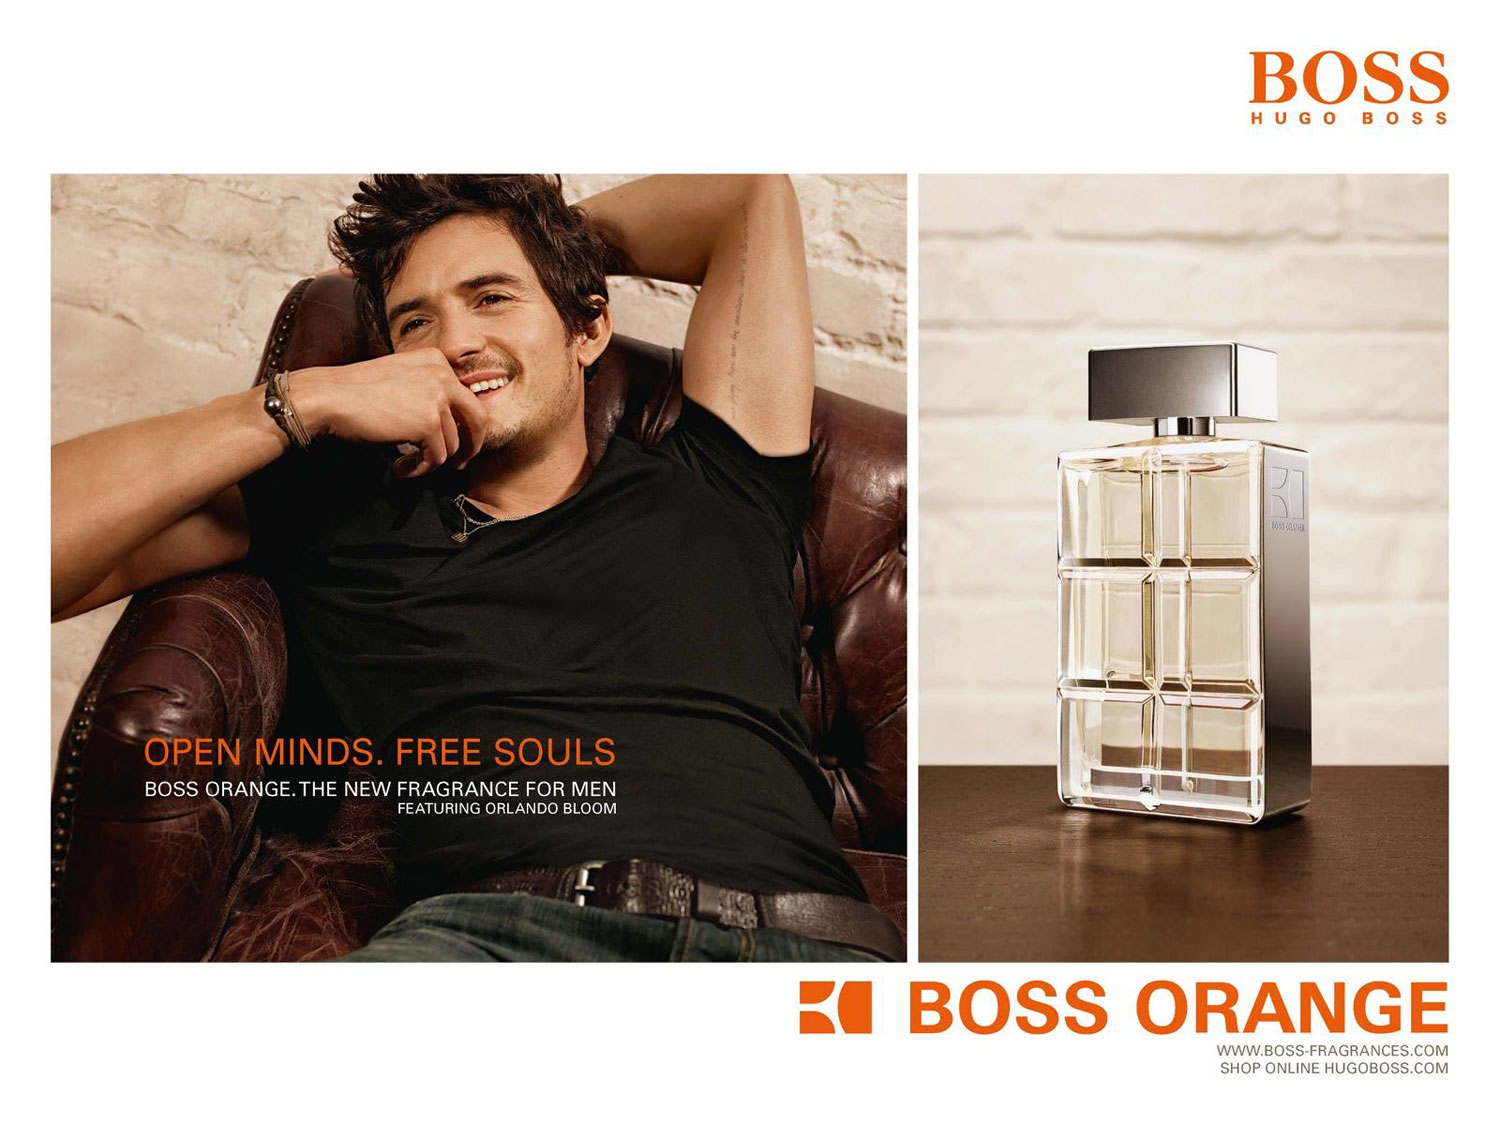 Orlando Bloom for BOSS Orange